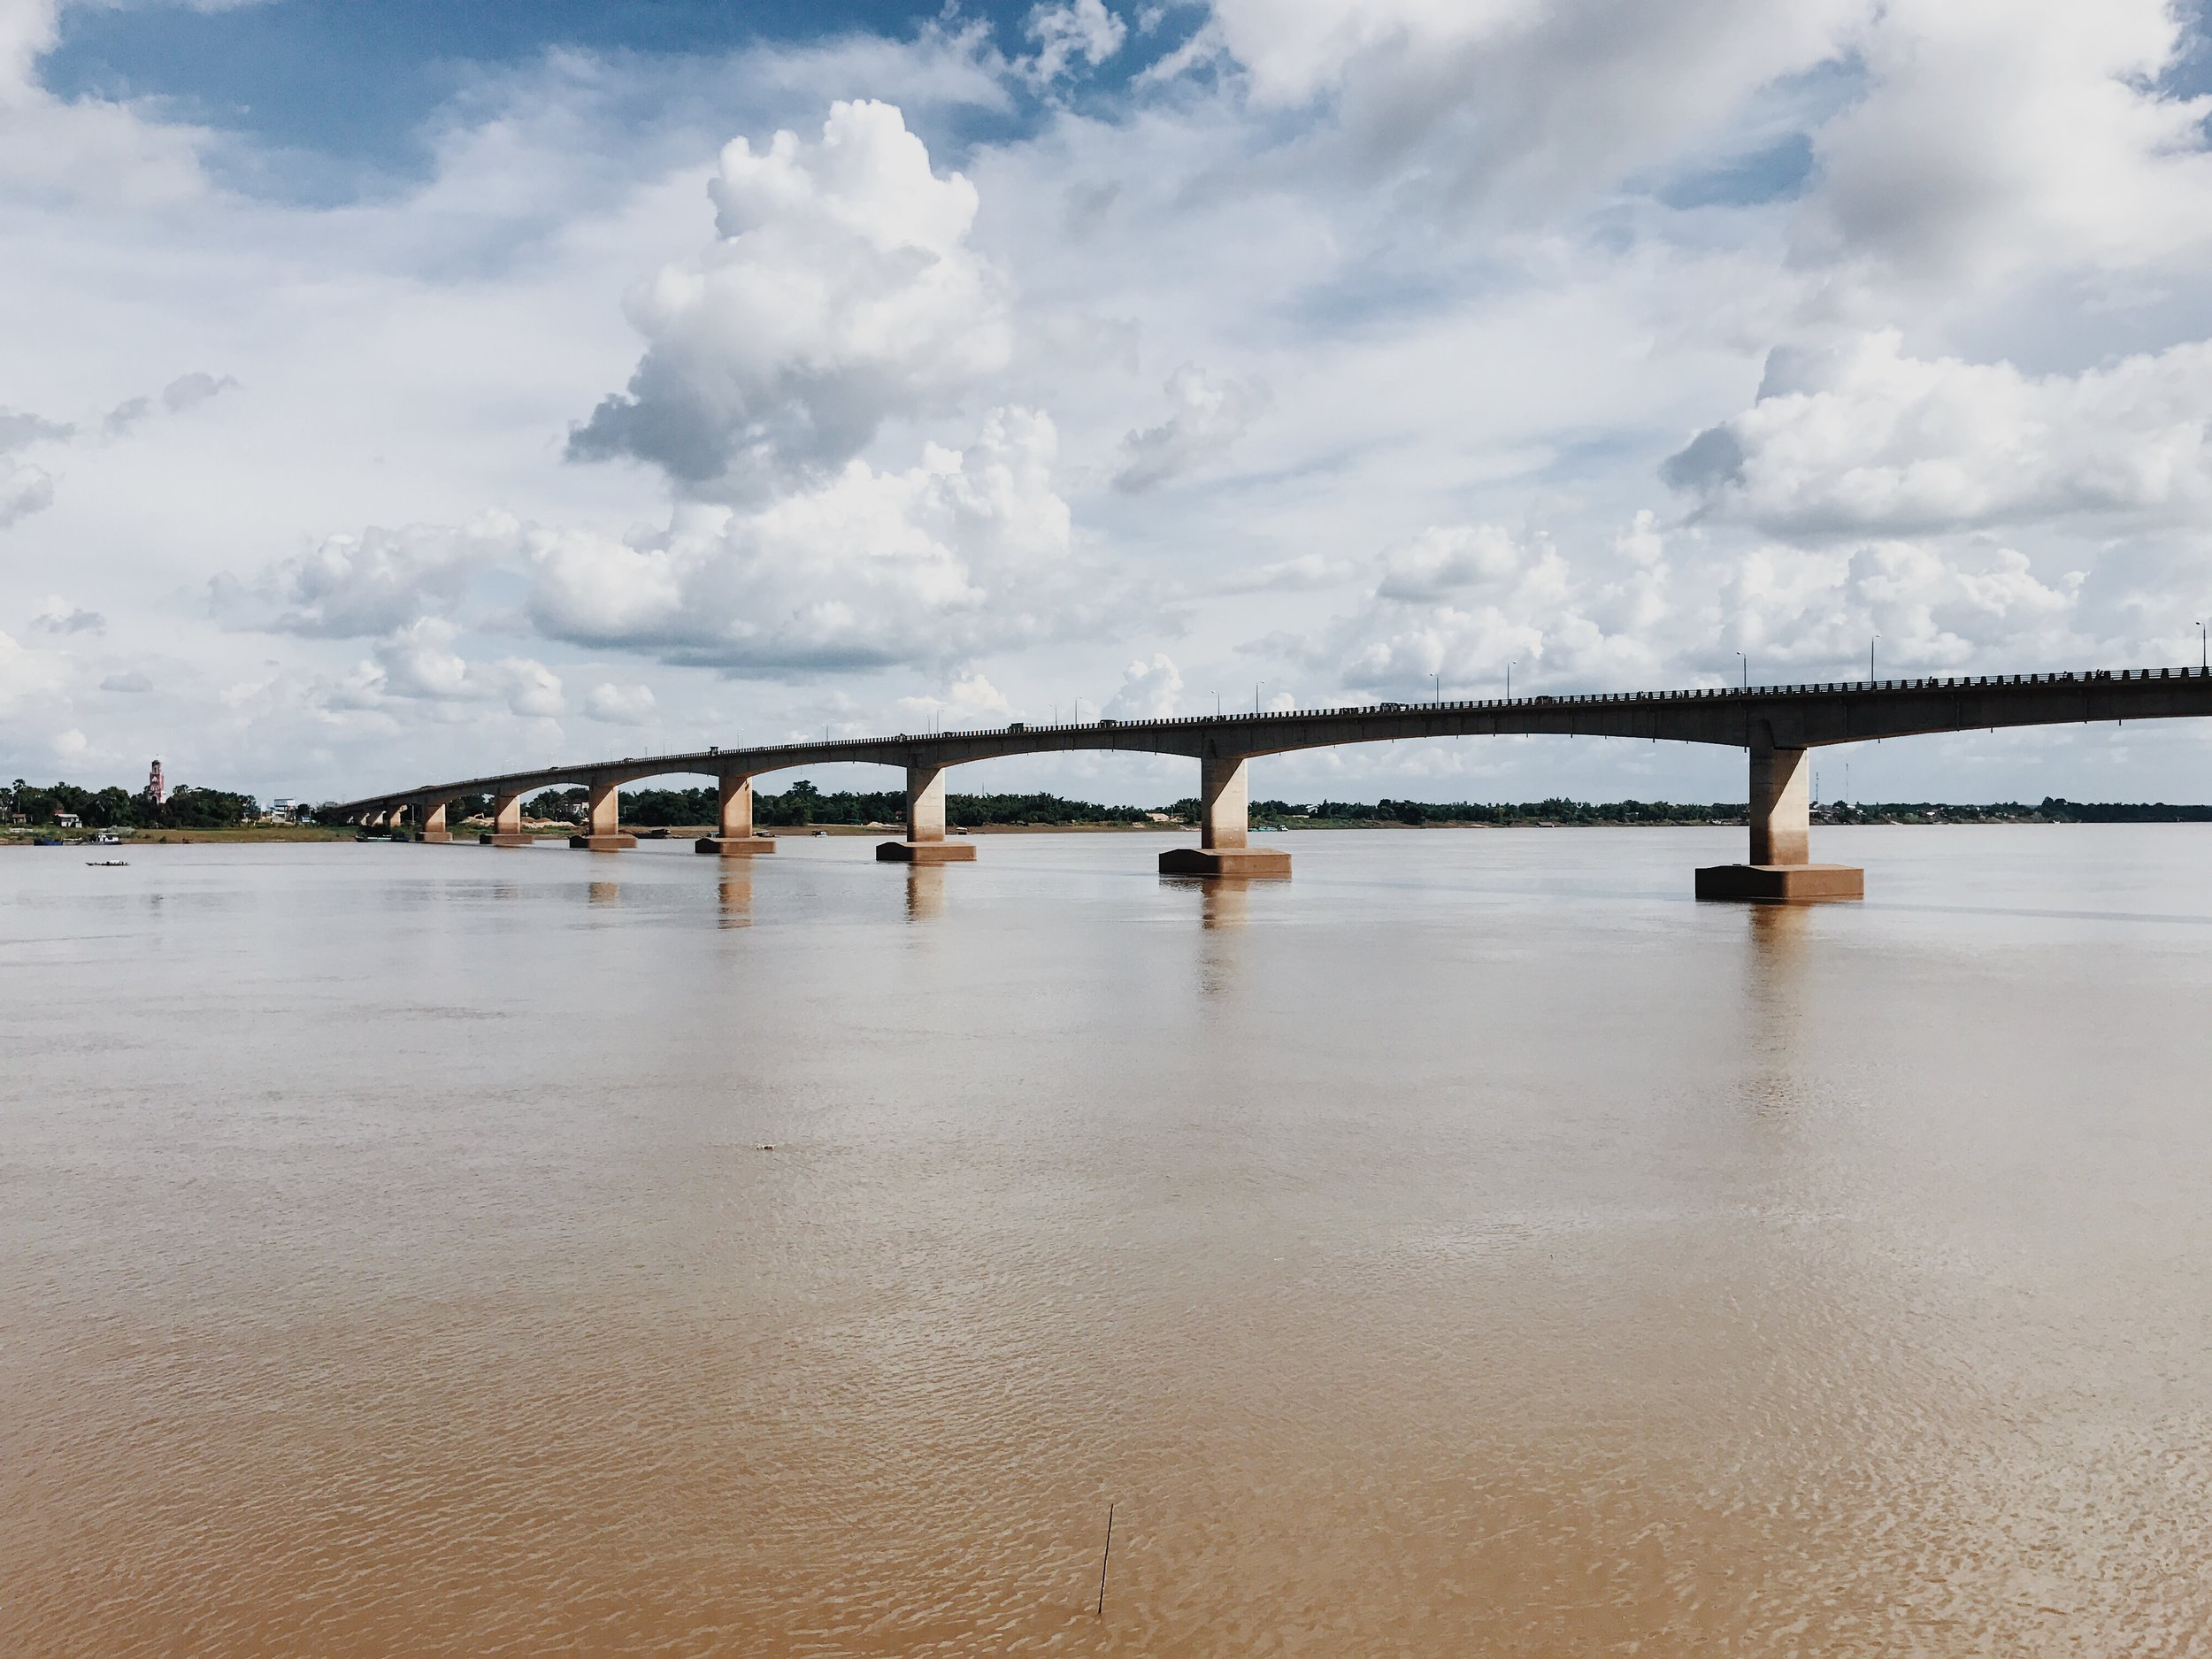 The view of the first bridge to be built over the Mekong River just a few steps from the Pizzeria